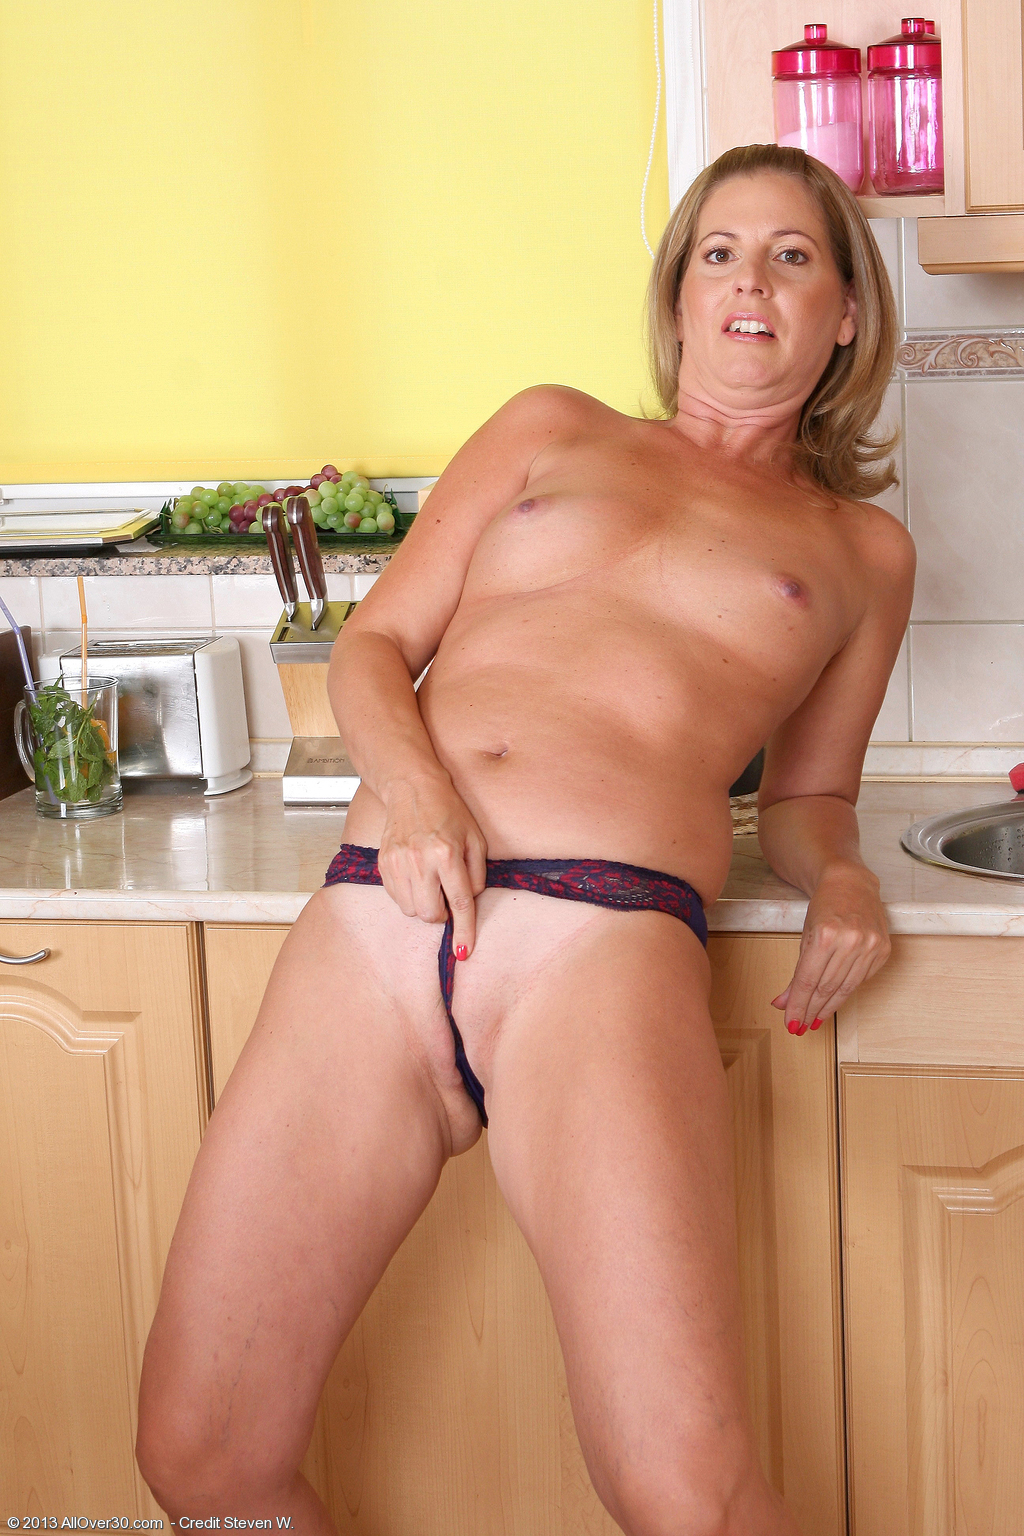 Agree, remarkable Milf nude kitchen confirm. All